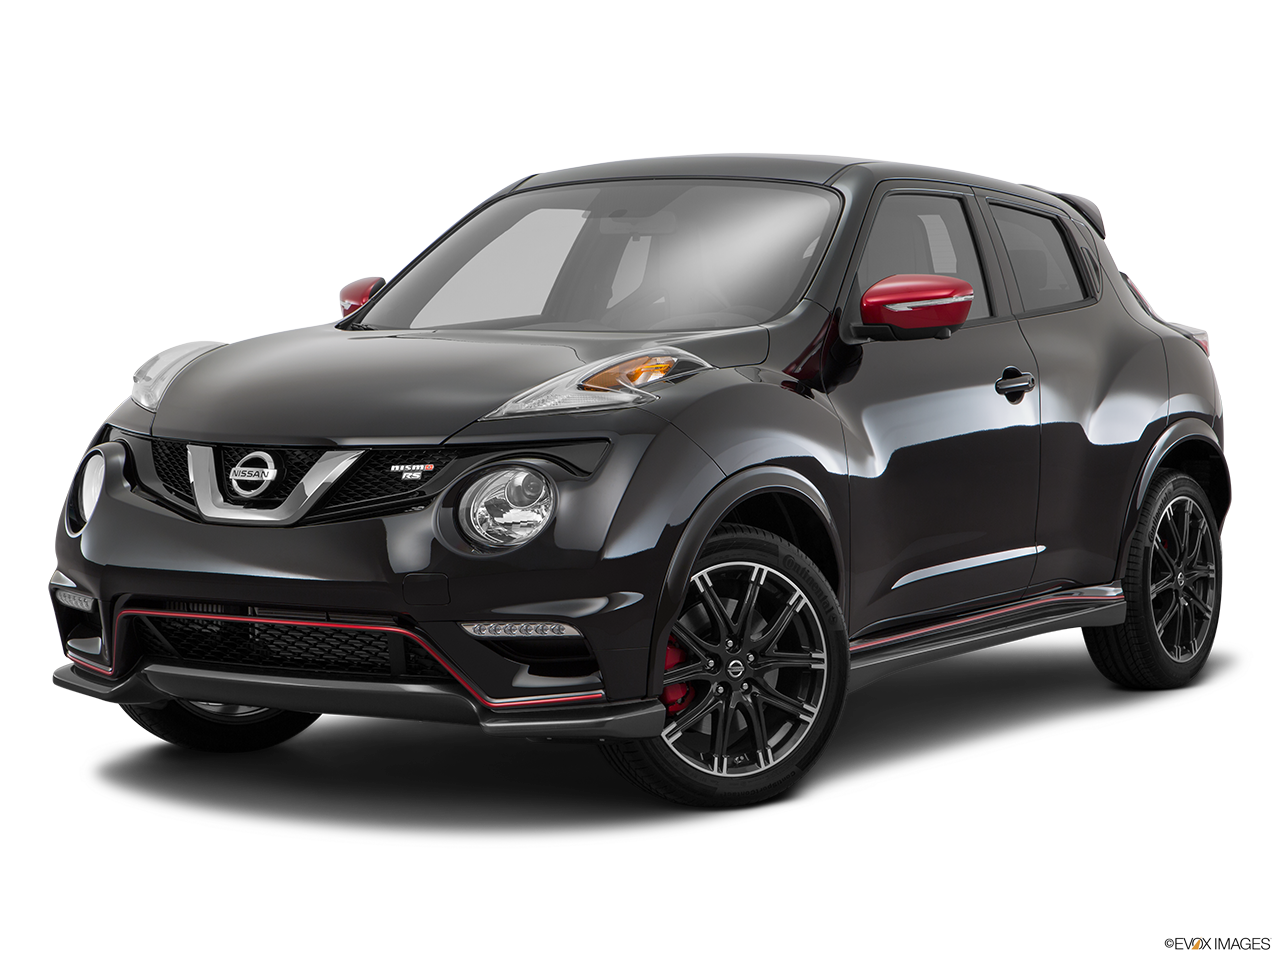 Test Drive A 2016 Nissan JUKE® at Empire Nissan in Ontario